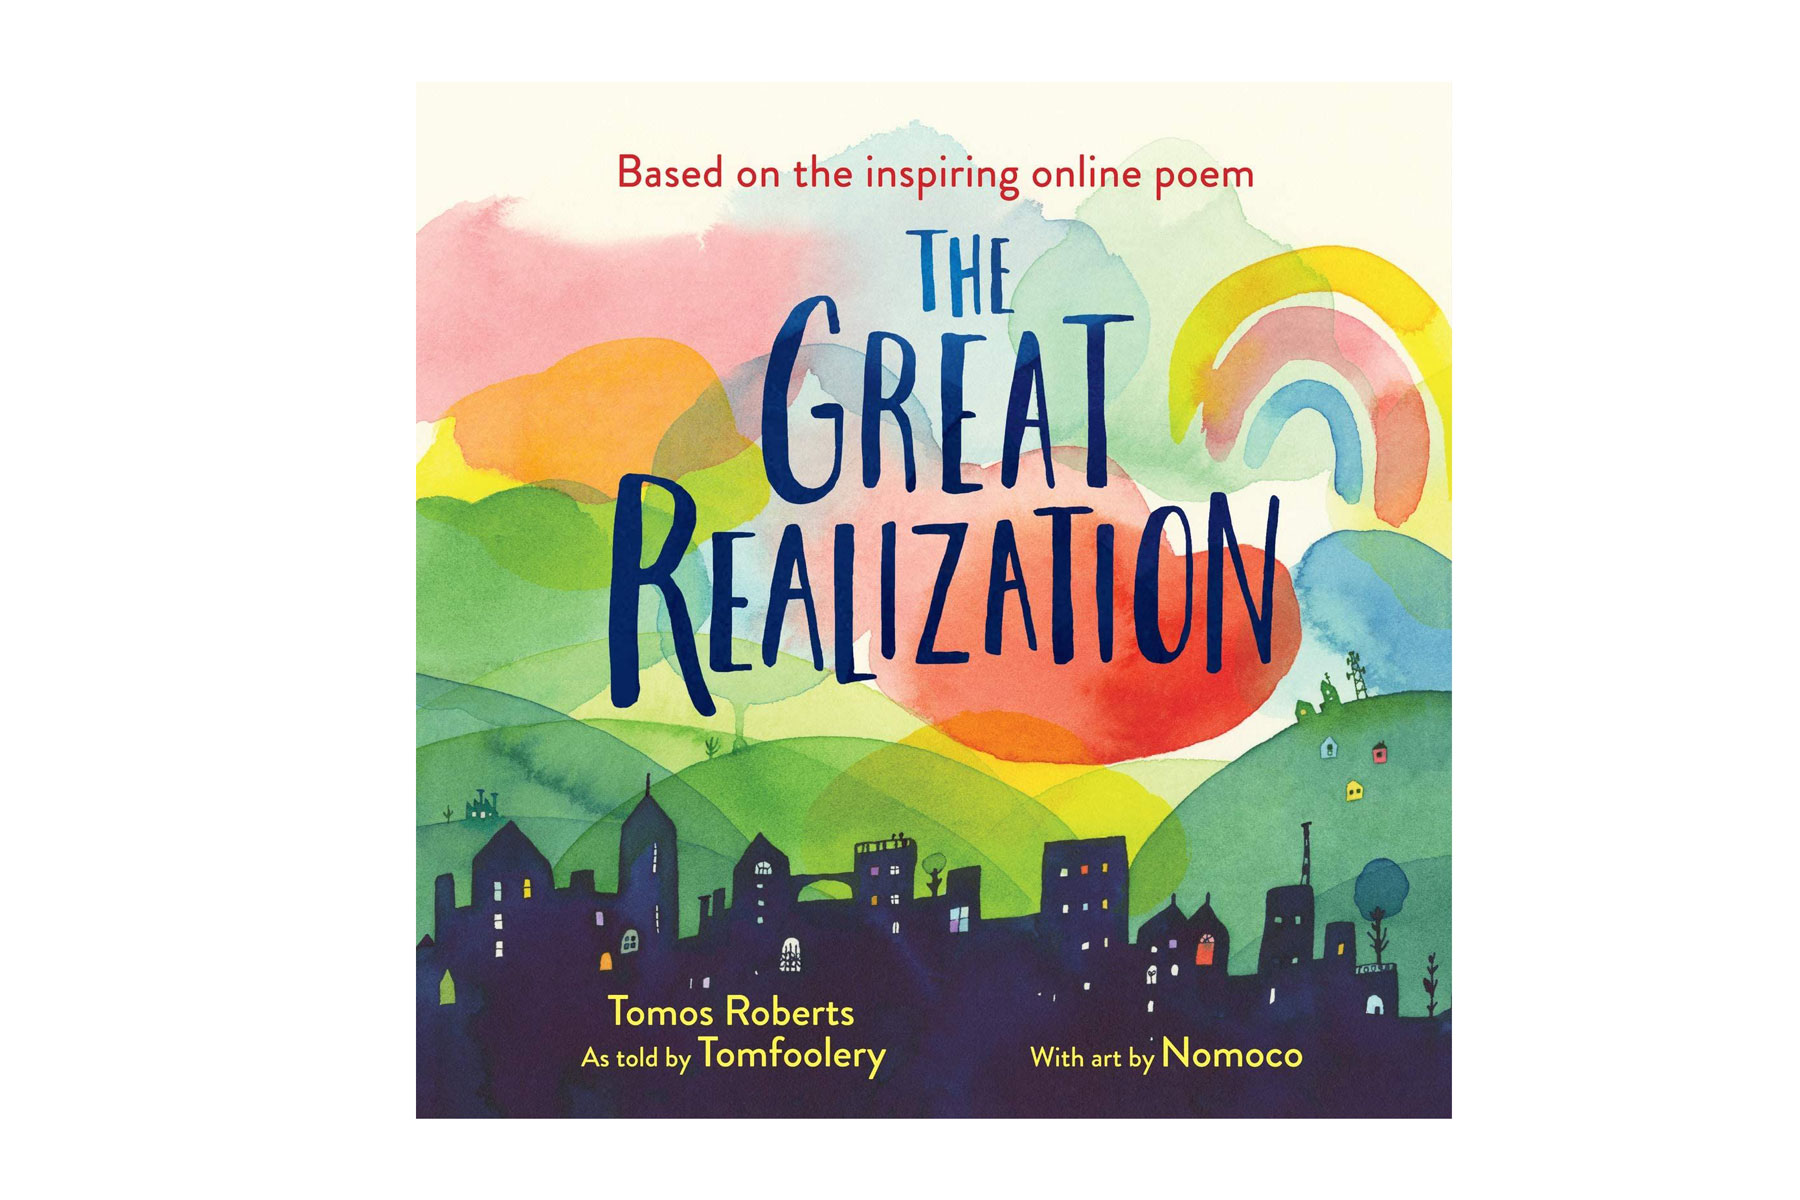 The Great Realization book